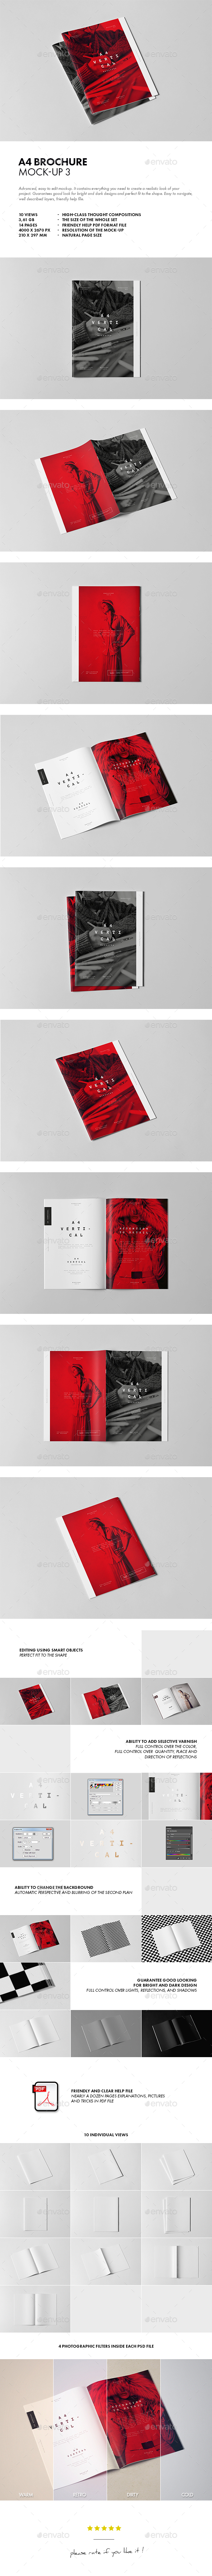 A4 Brochure Mock-up 3 - Brochures Print